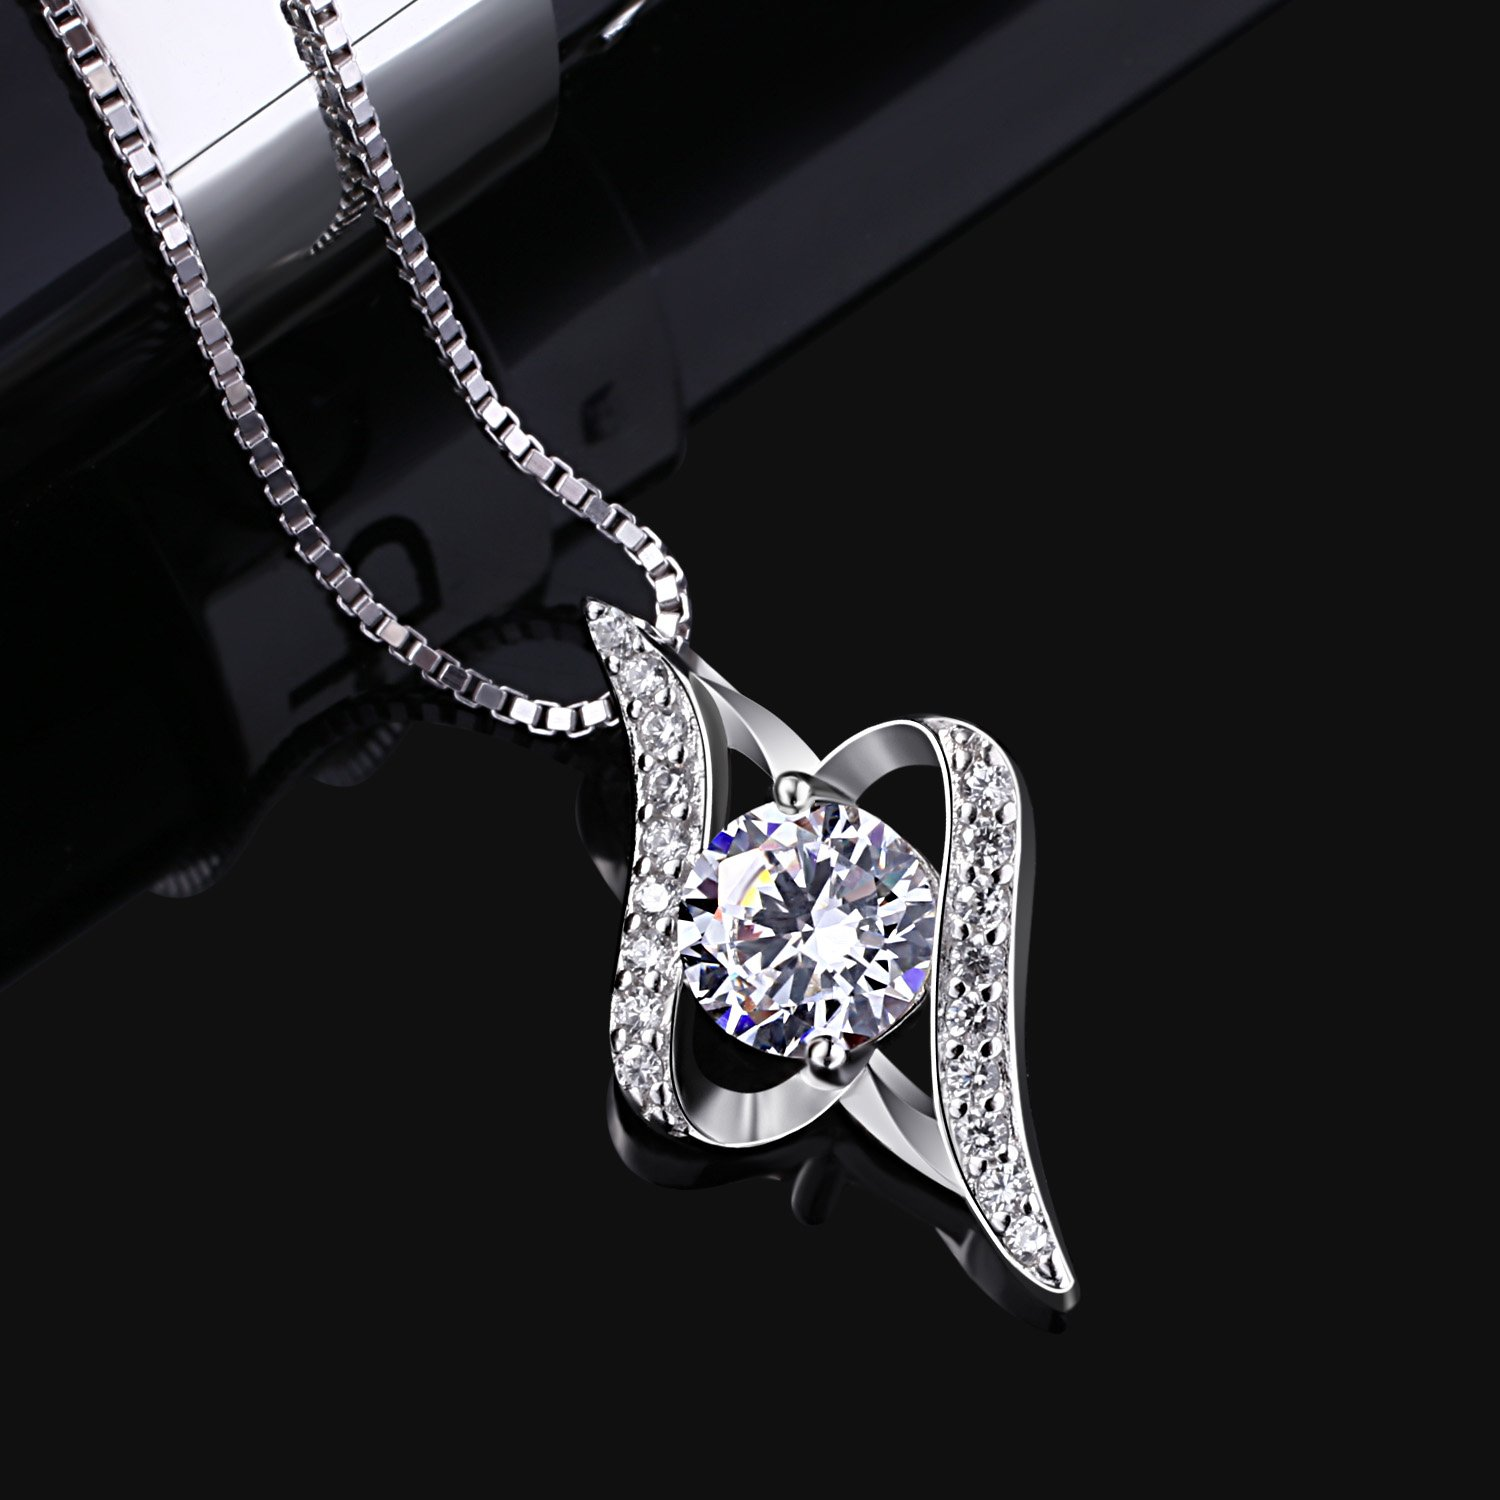 cubic long product pm clear w lariat mar zirconia silver photo ruth necklace jewelry barzel gold